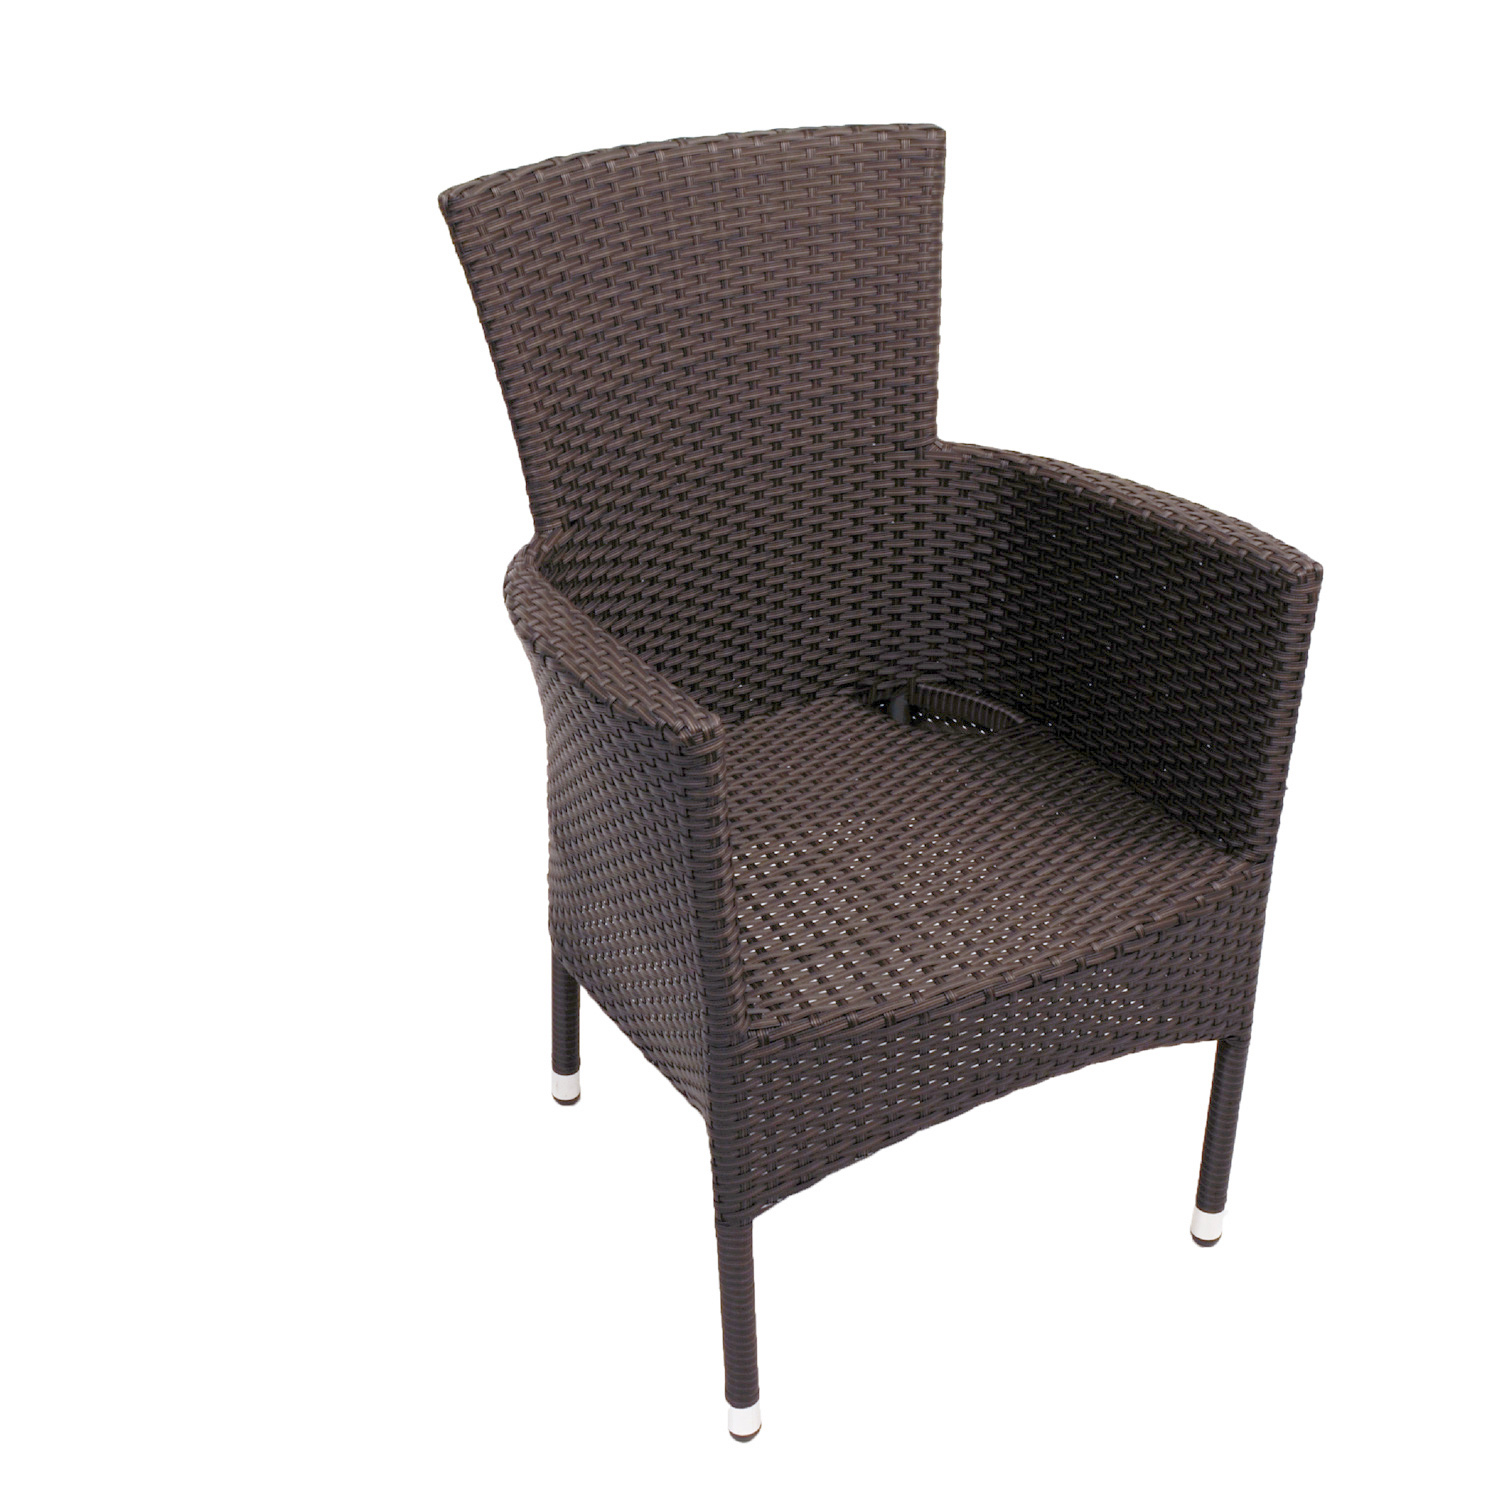 STOCKHOLM CHAIR BROWN FRONT RIGHT UNDRESSED